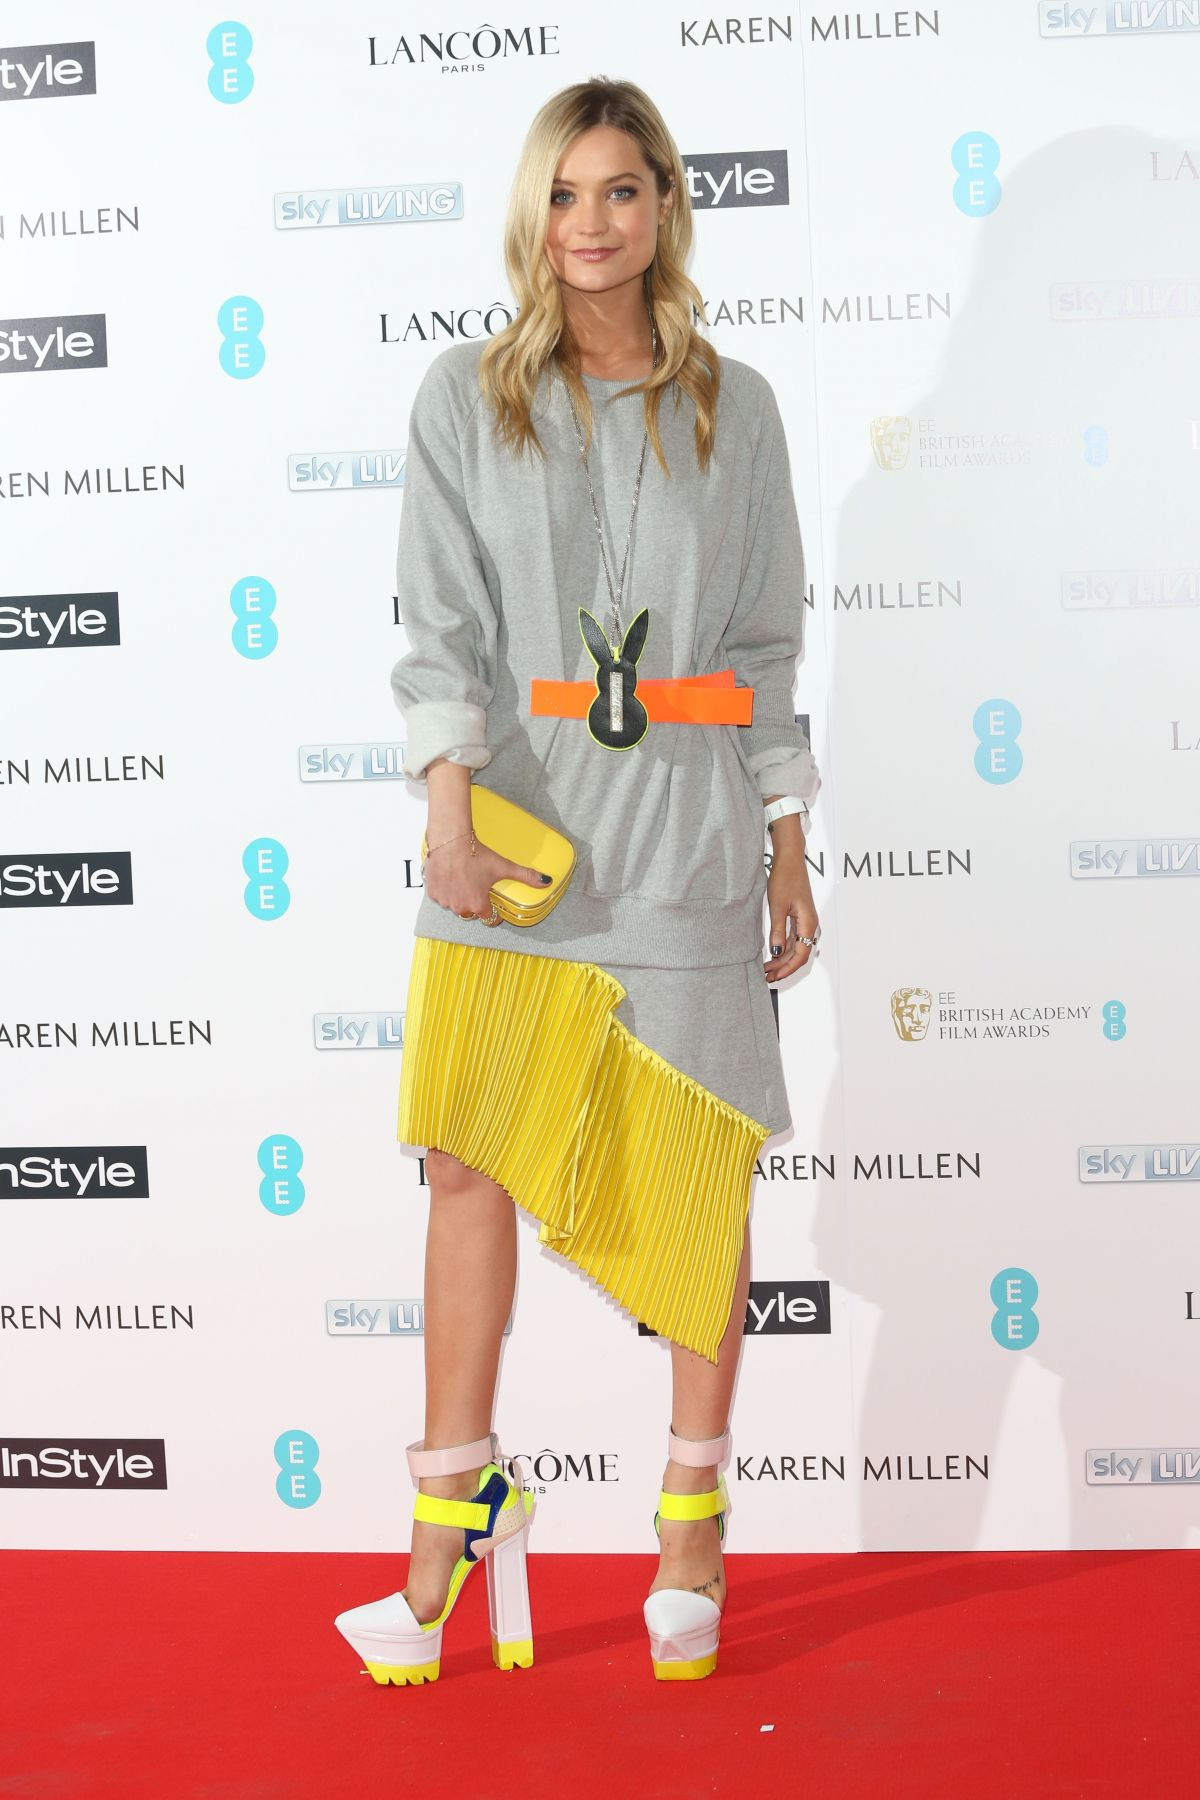 LAURA WHITMORE at Instyle Pre-bafta Party in London